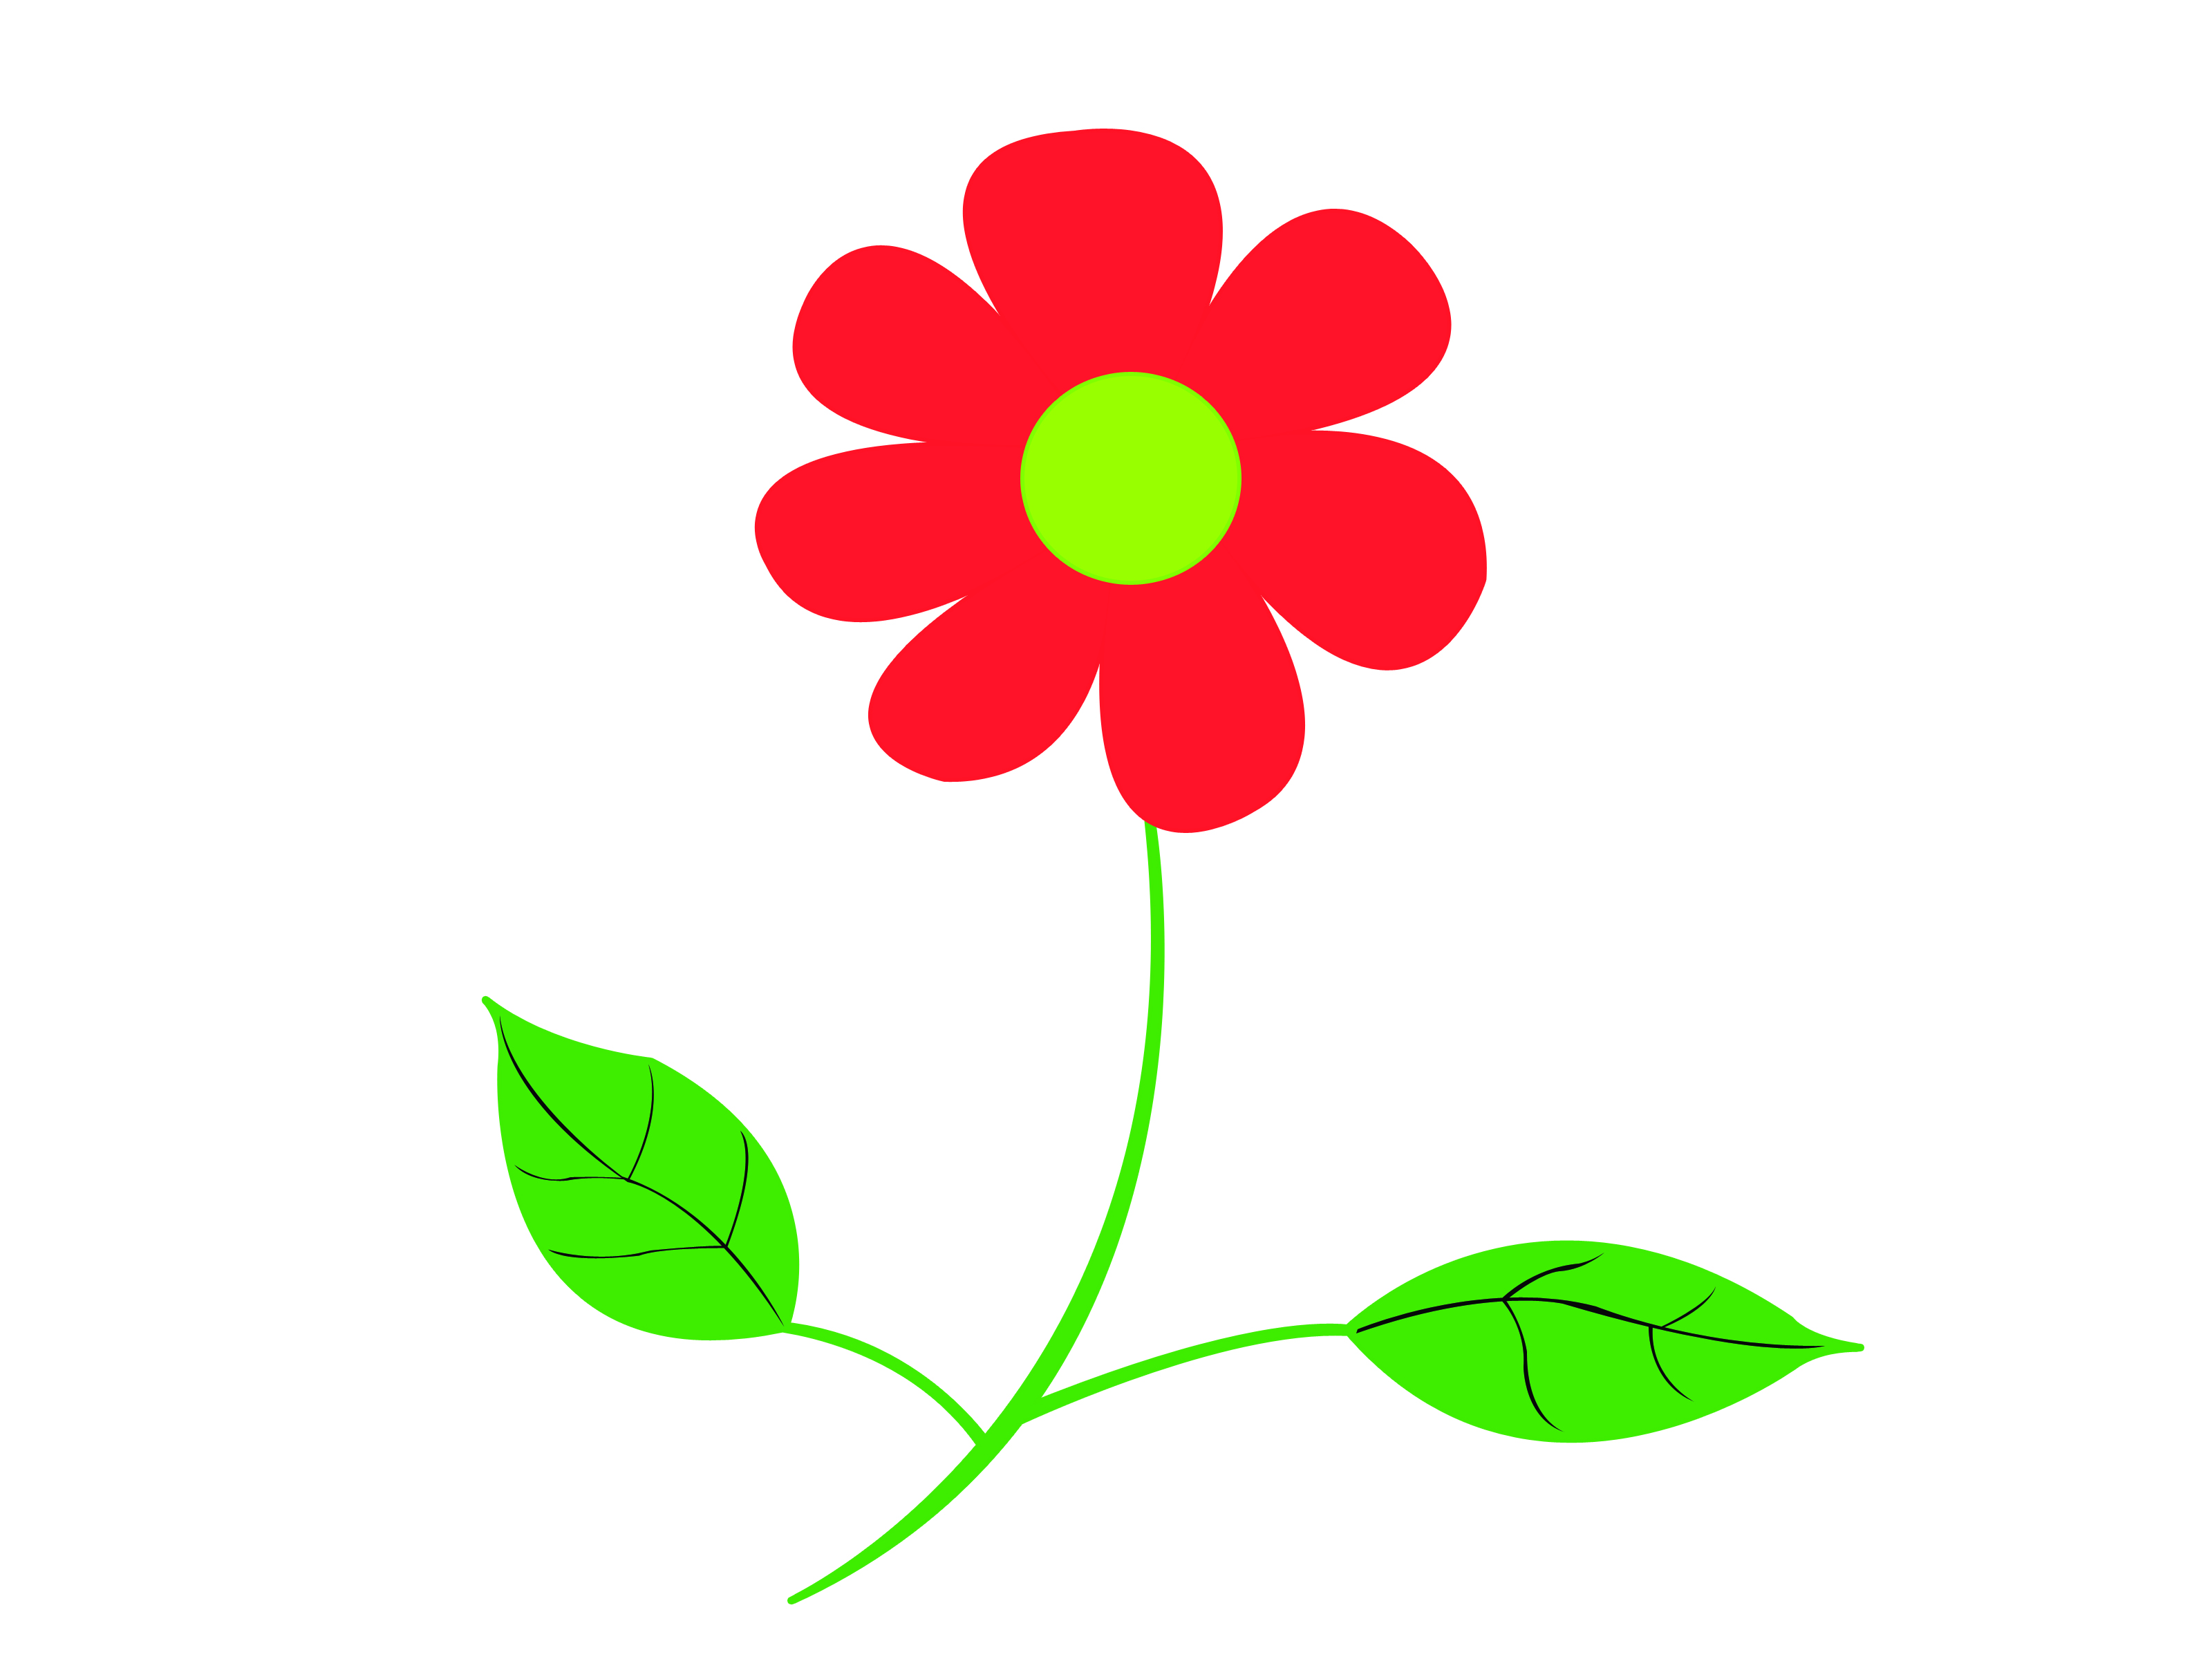 Flowers Drawing For Kids at GetDrawings.com | Free for personal use ...